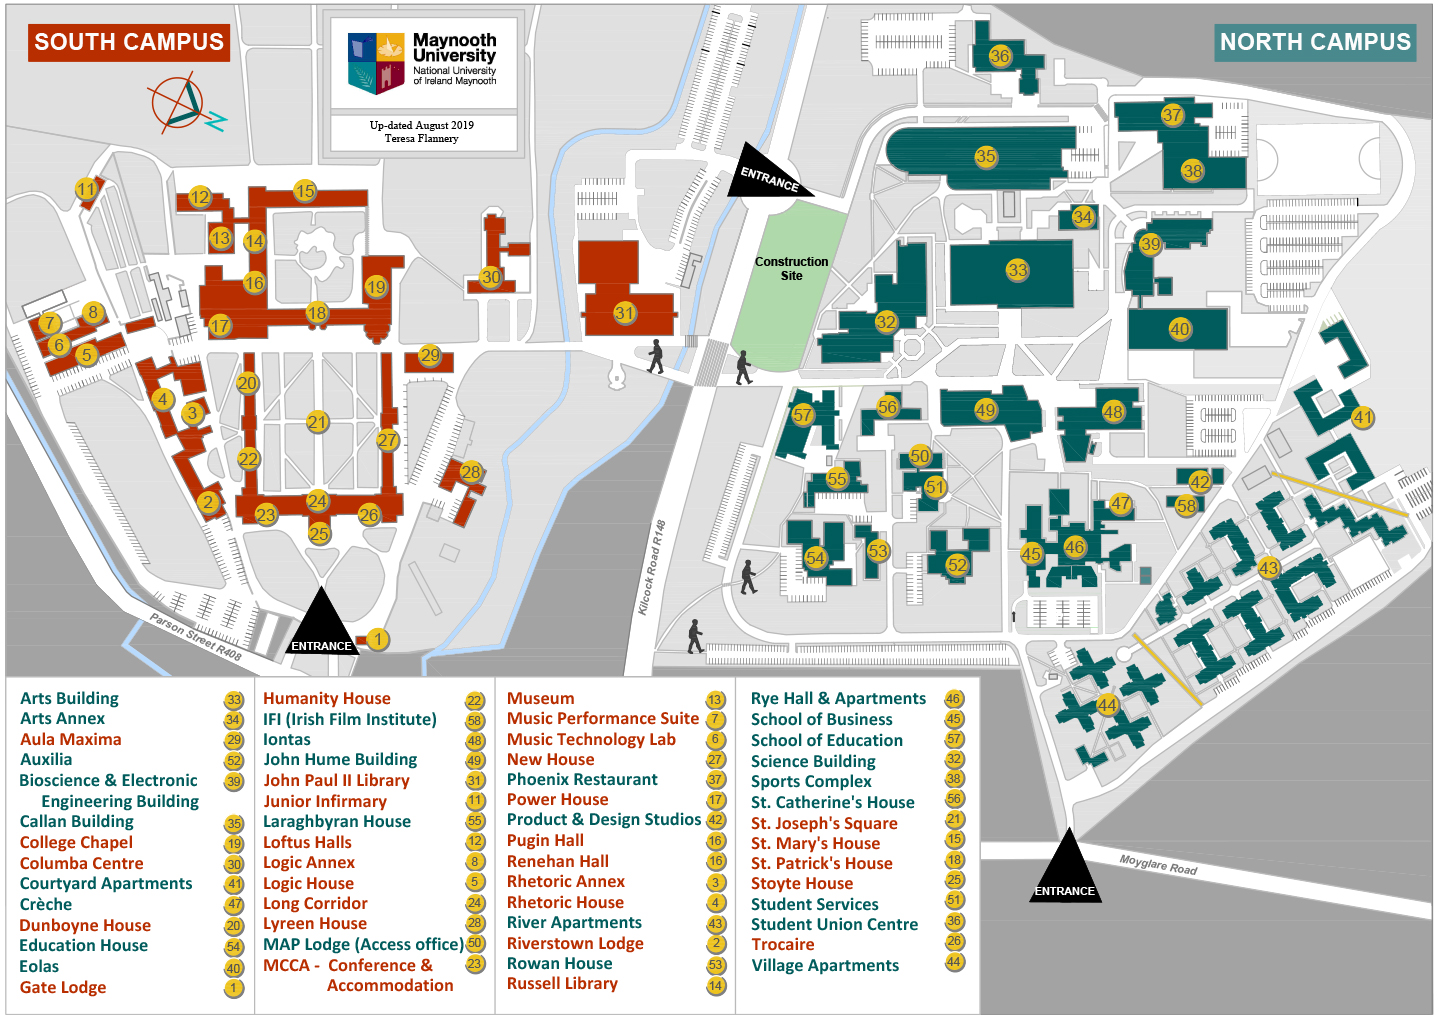 Basic Campus Map